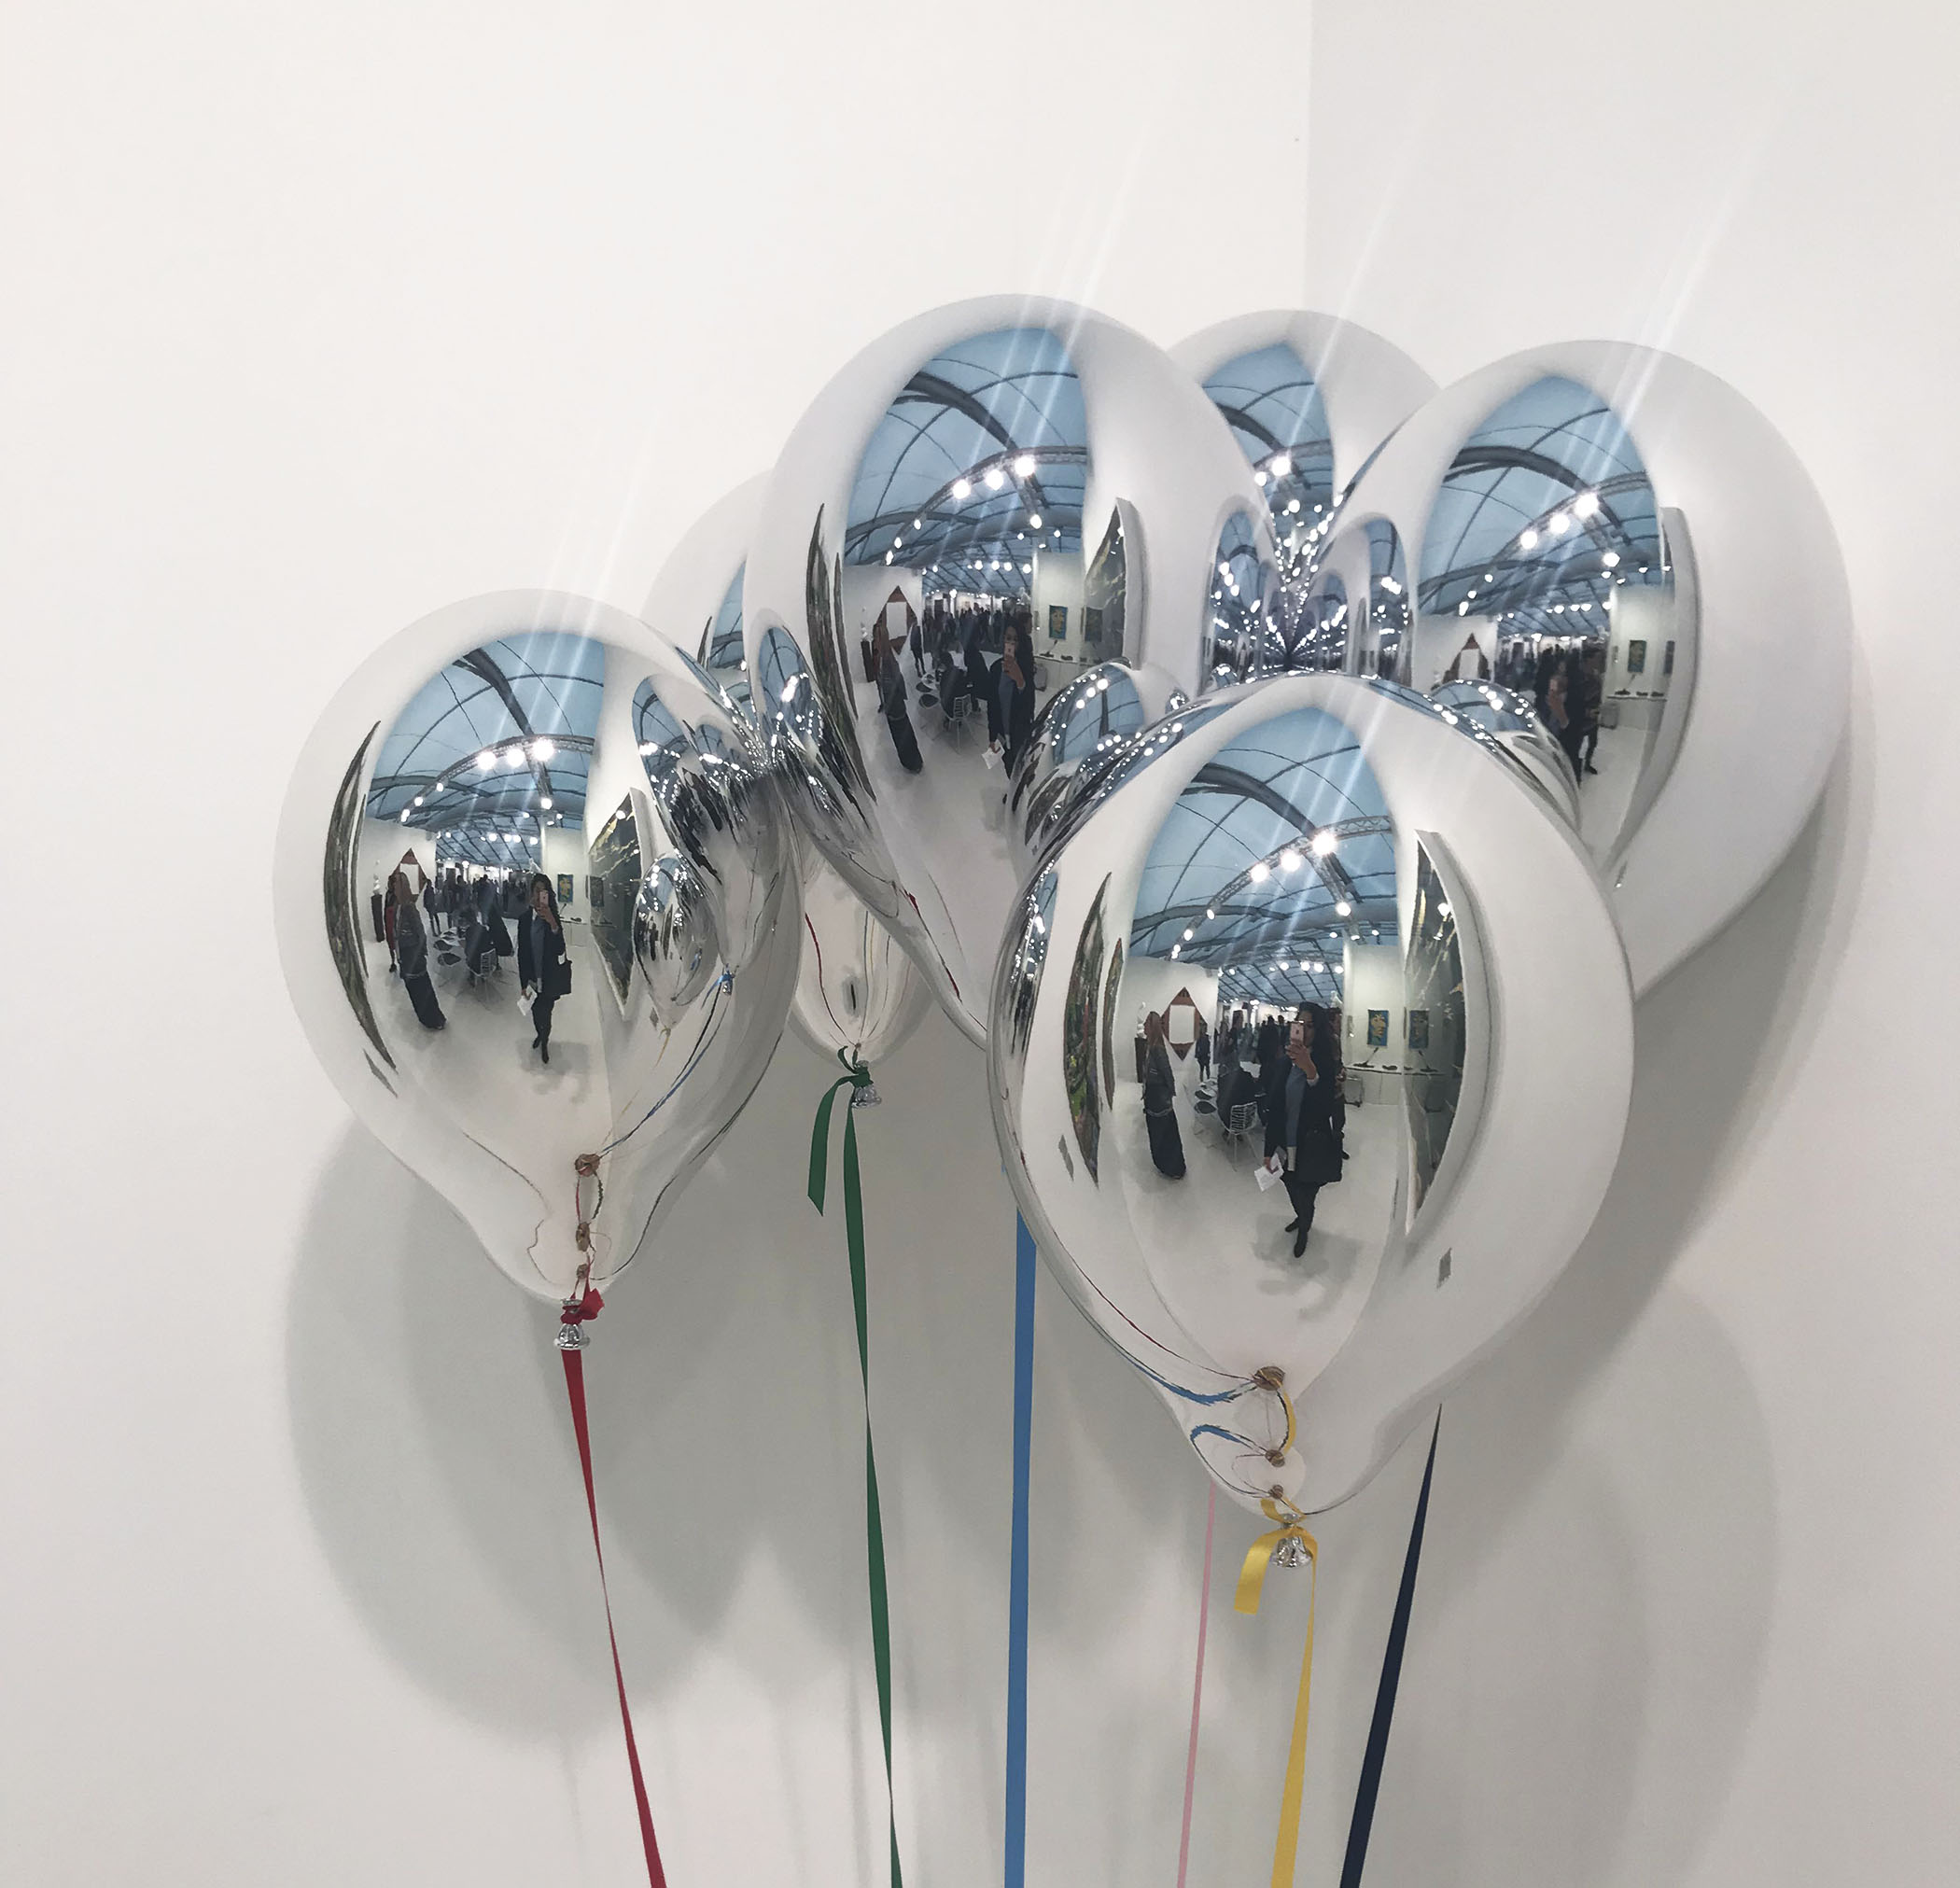 Jeppe Hein, ' Fly me to the Moon ', Chrome-plated balloons, seen at Frieze Art Fair 2018